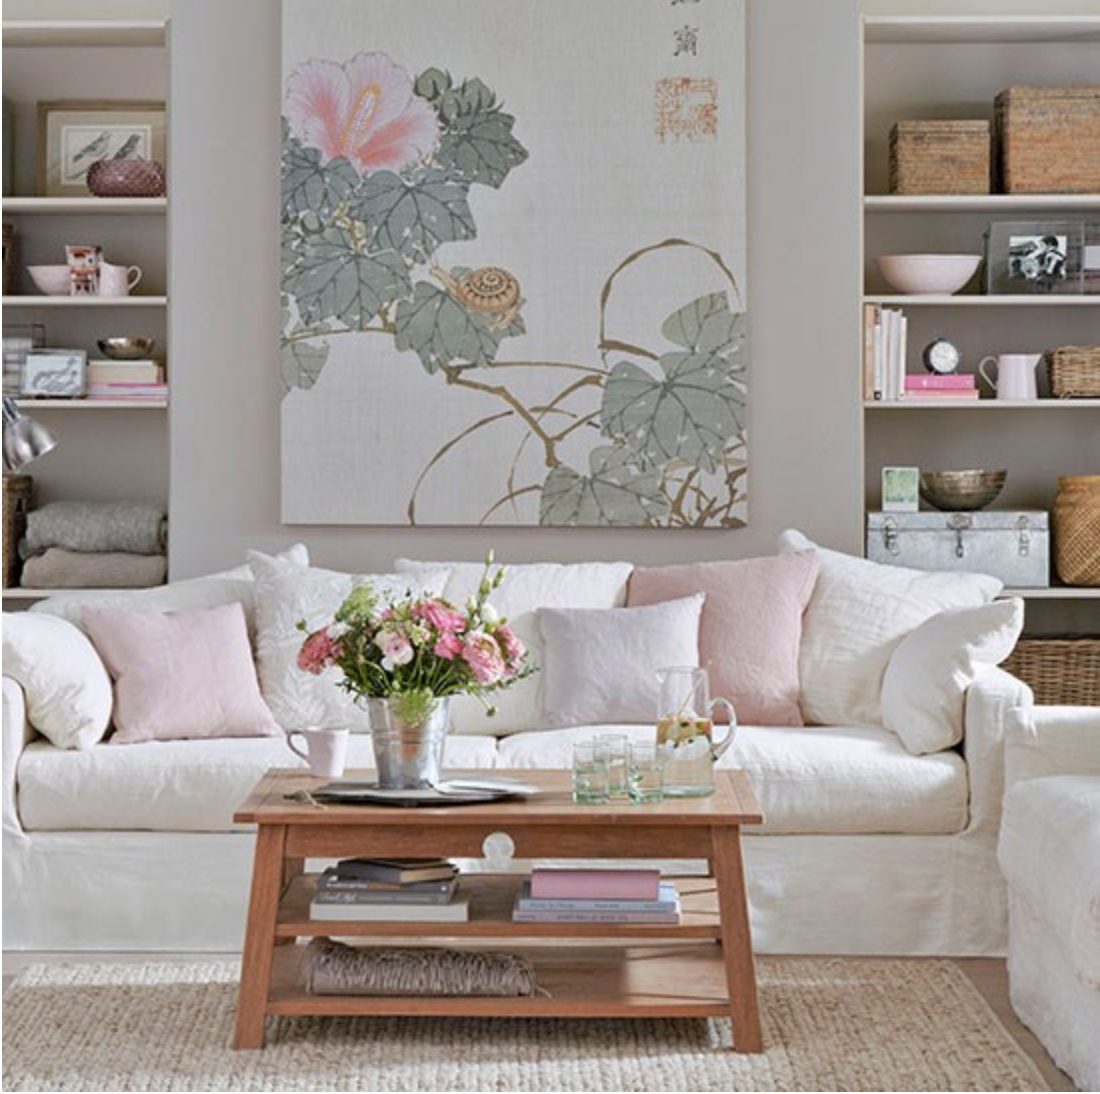 Sitting Room Ideas 2016 Of Salas Pequenas Romanticas E Muito Charmosas Decorandoonline